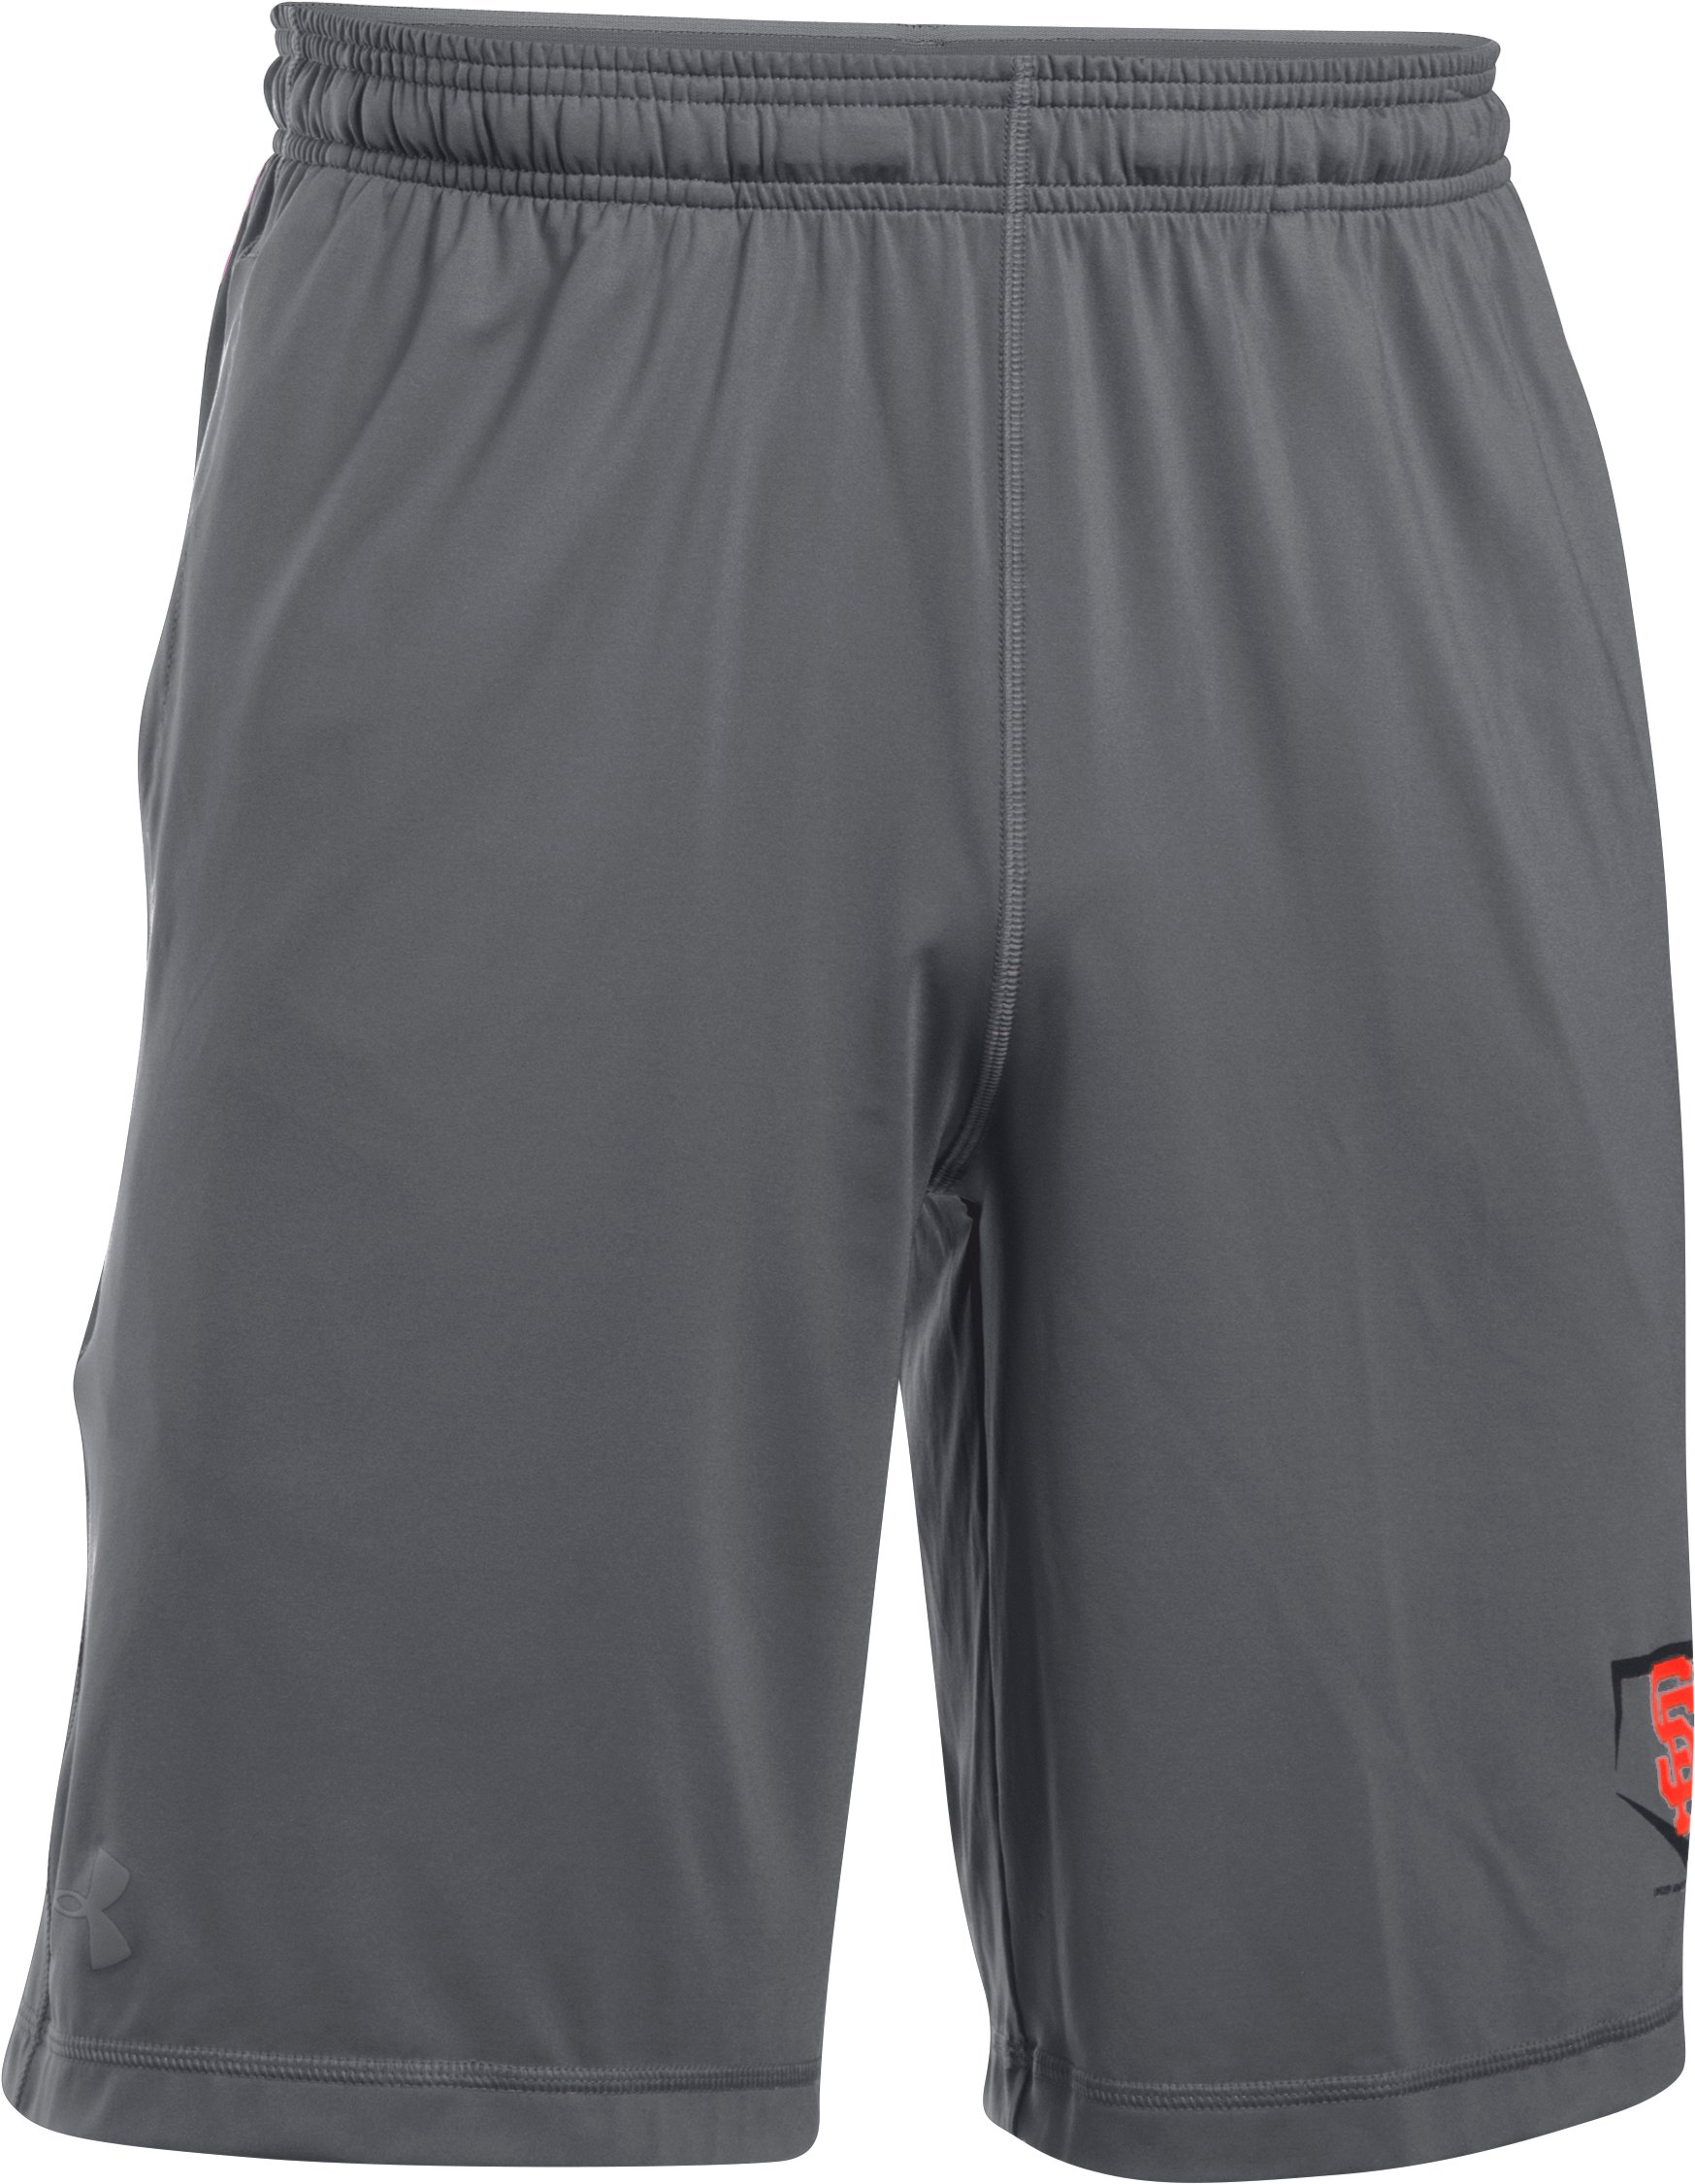 Men's San Francisco Giants Raid Shorts, Graphite, undefined